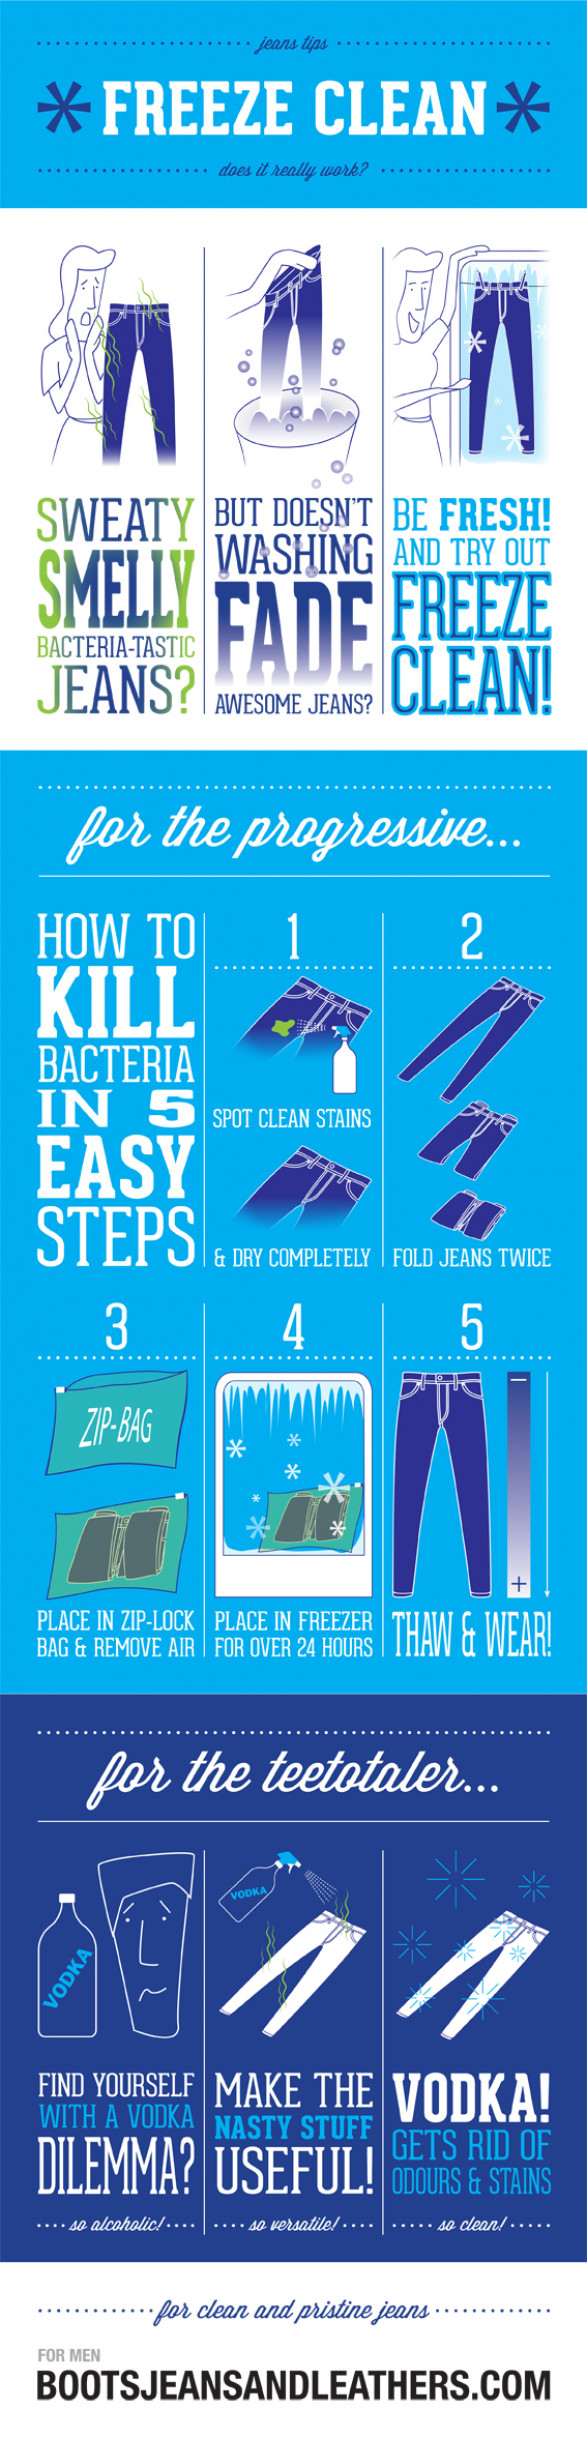 Freezing Your Jeans